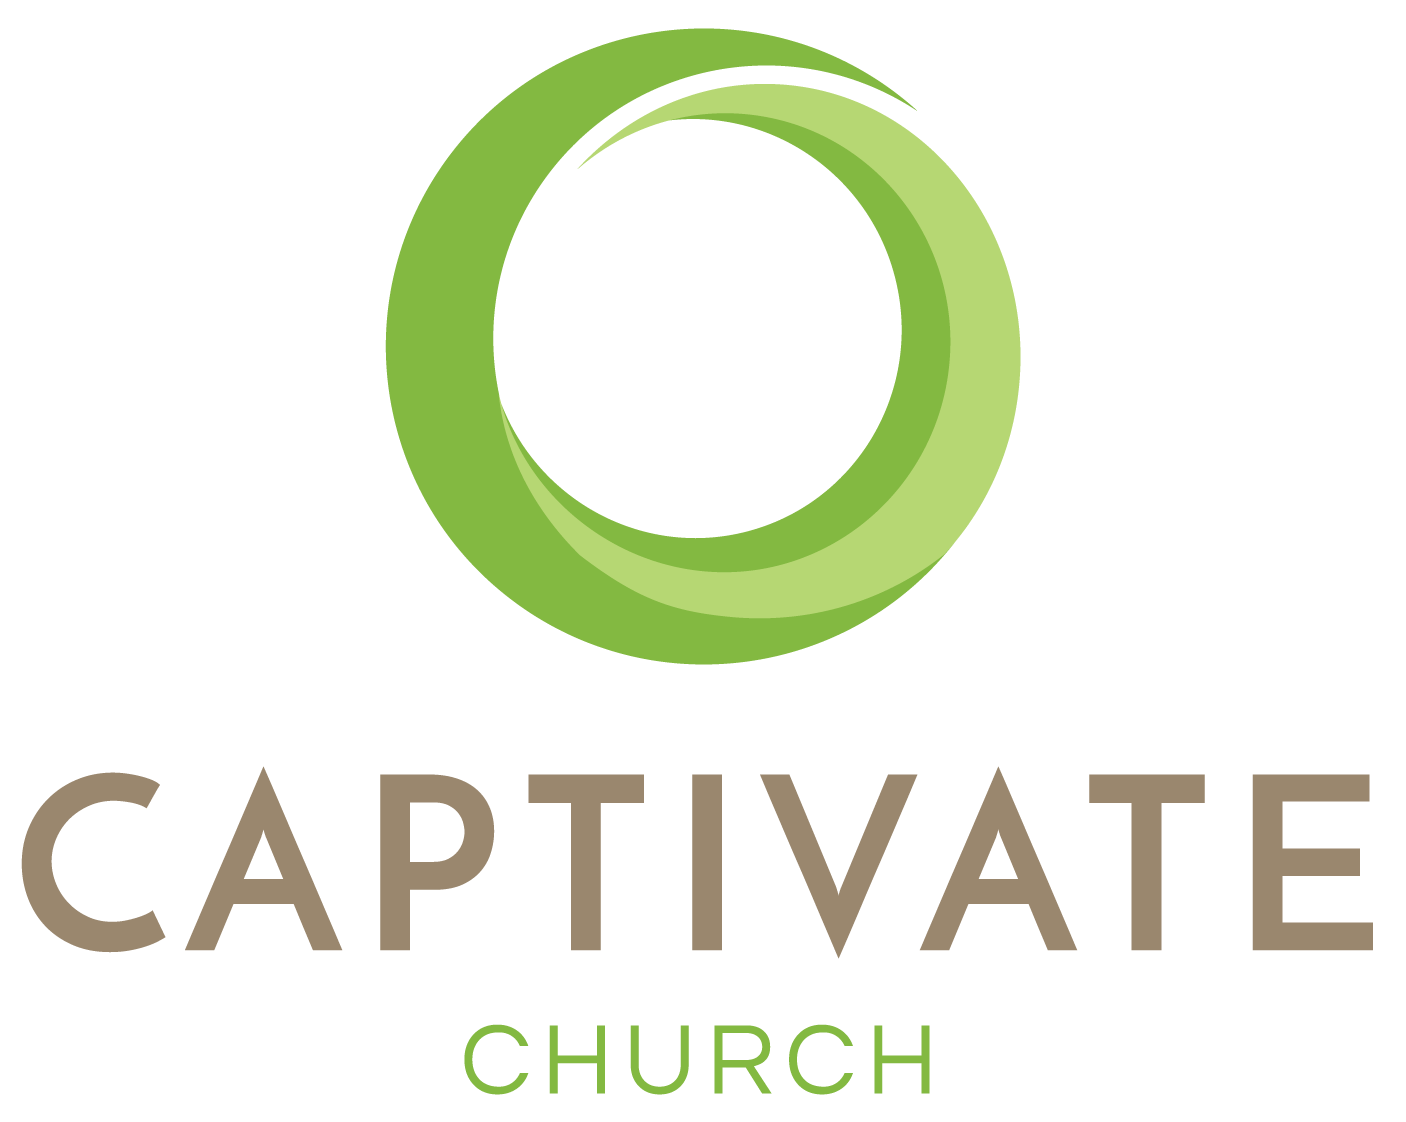 Captivate Church